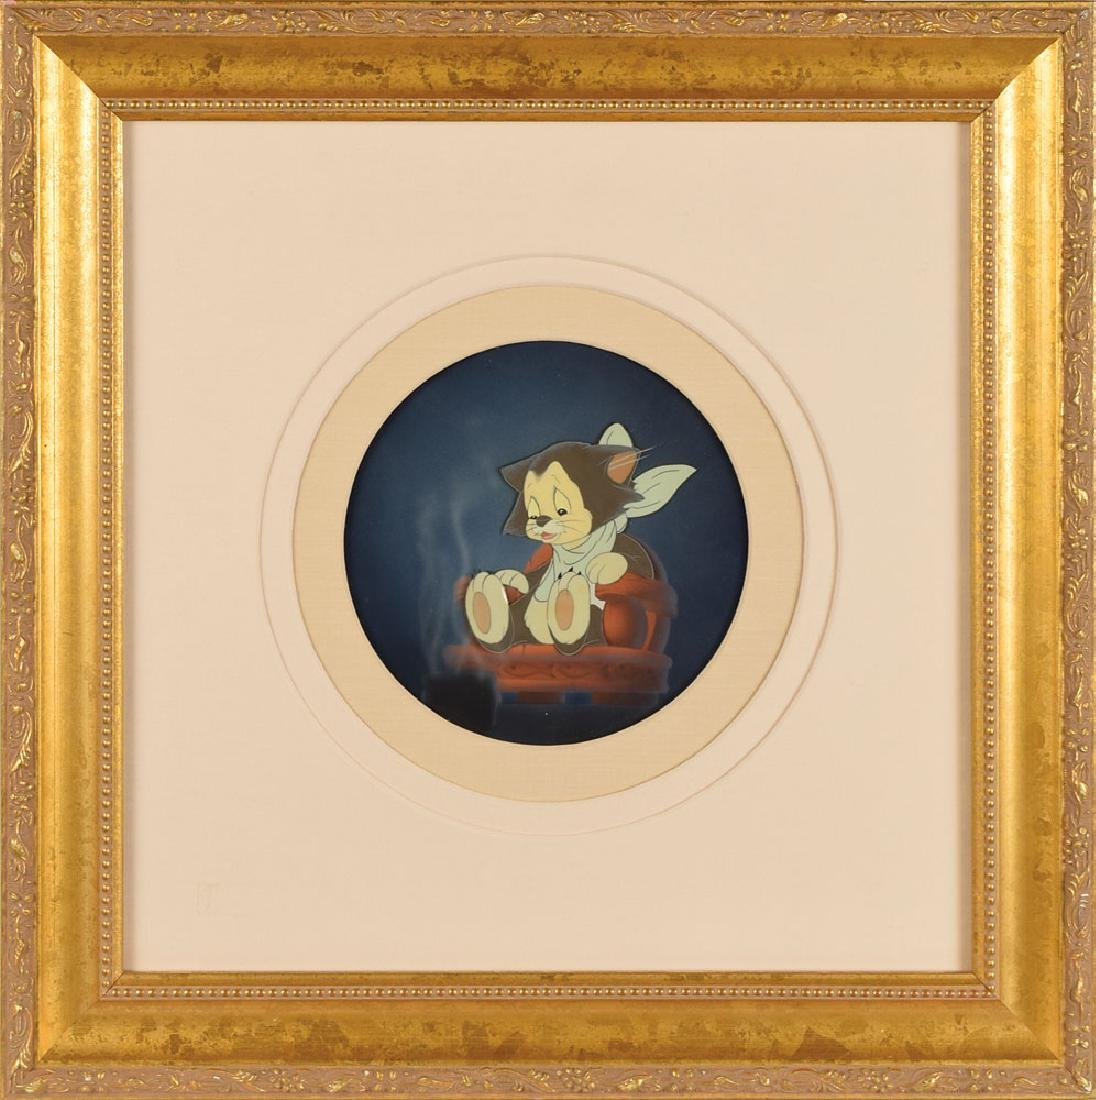 Figaro production cel from Pinocchio